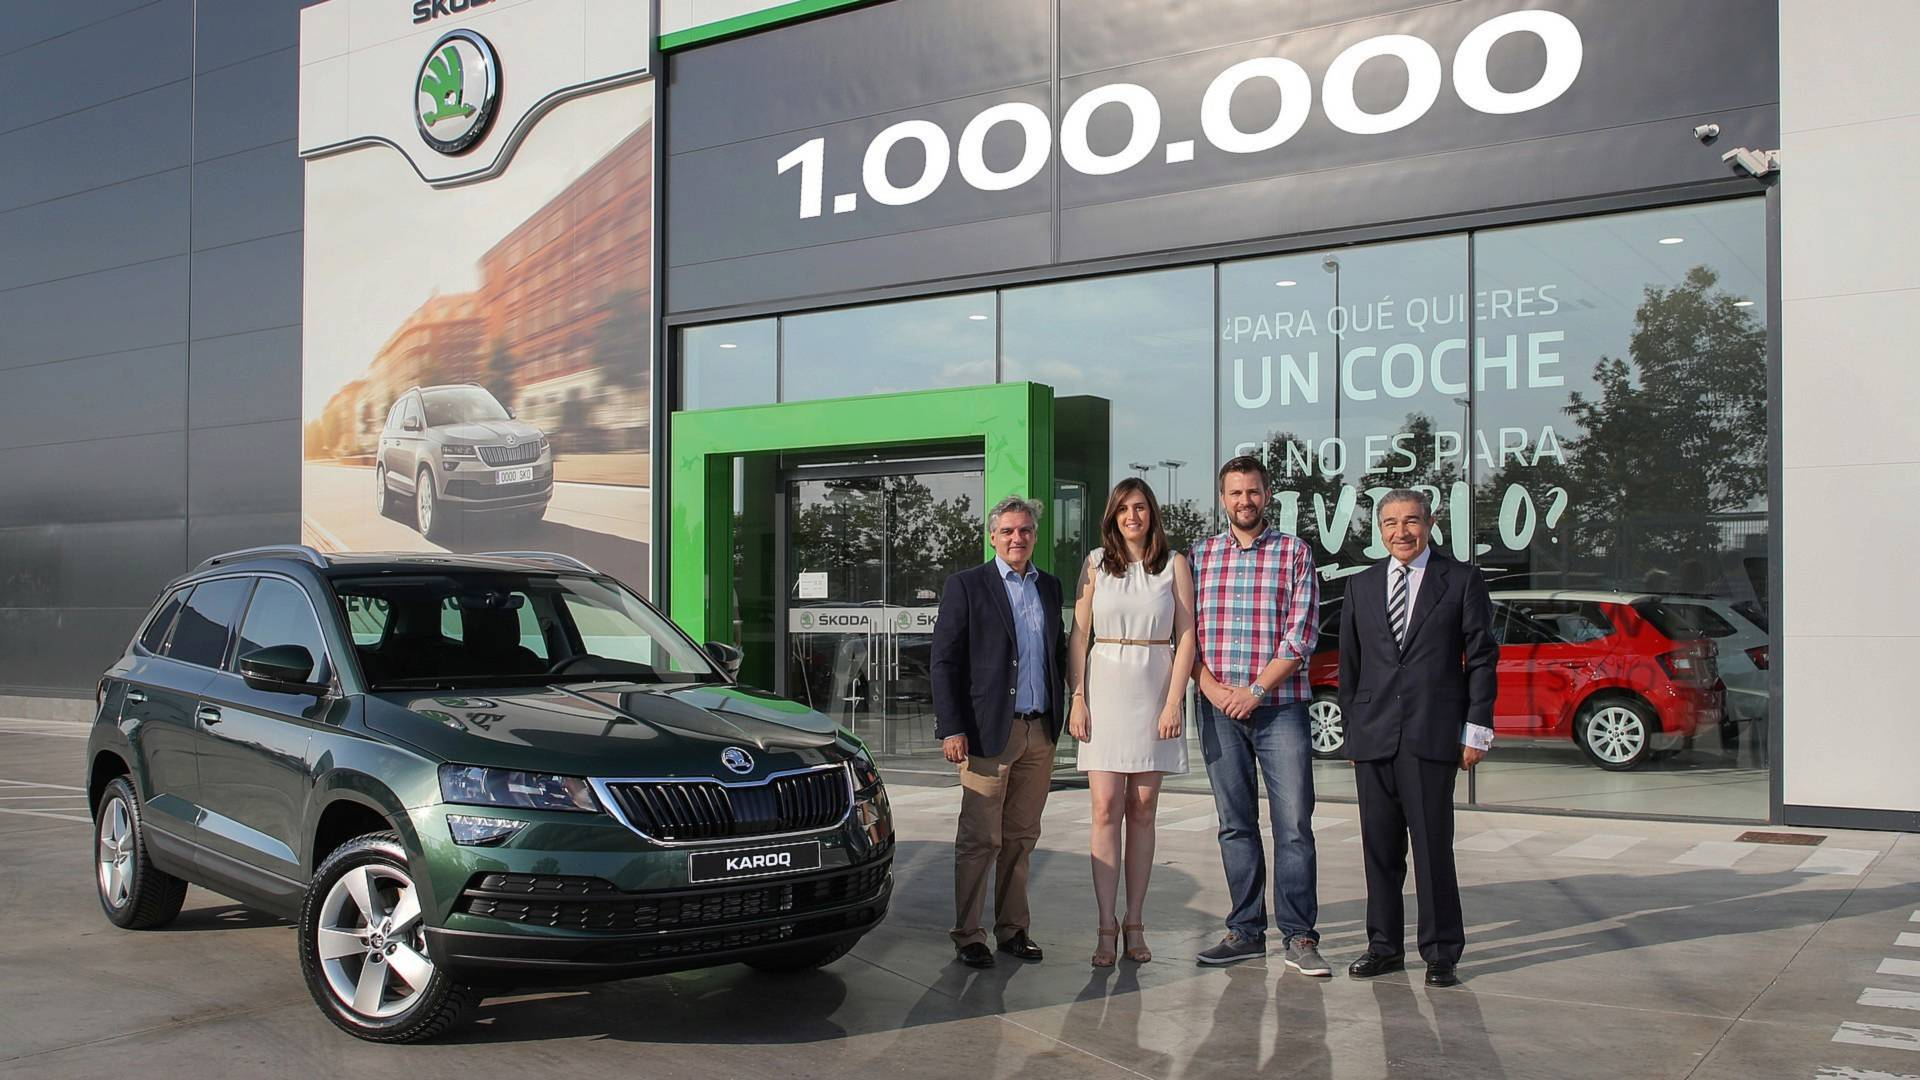 skoda-builds-one-millionth-suv (4)